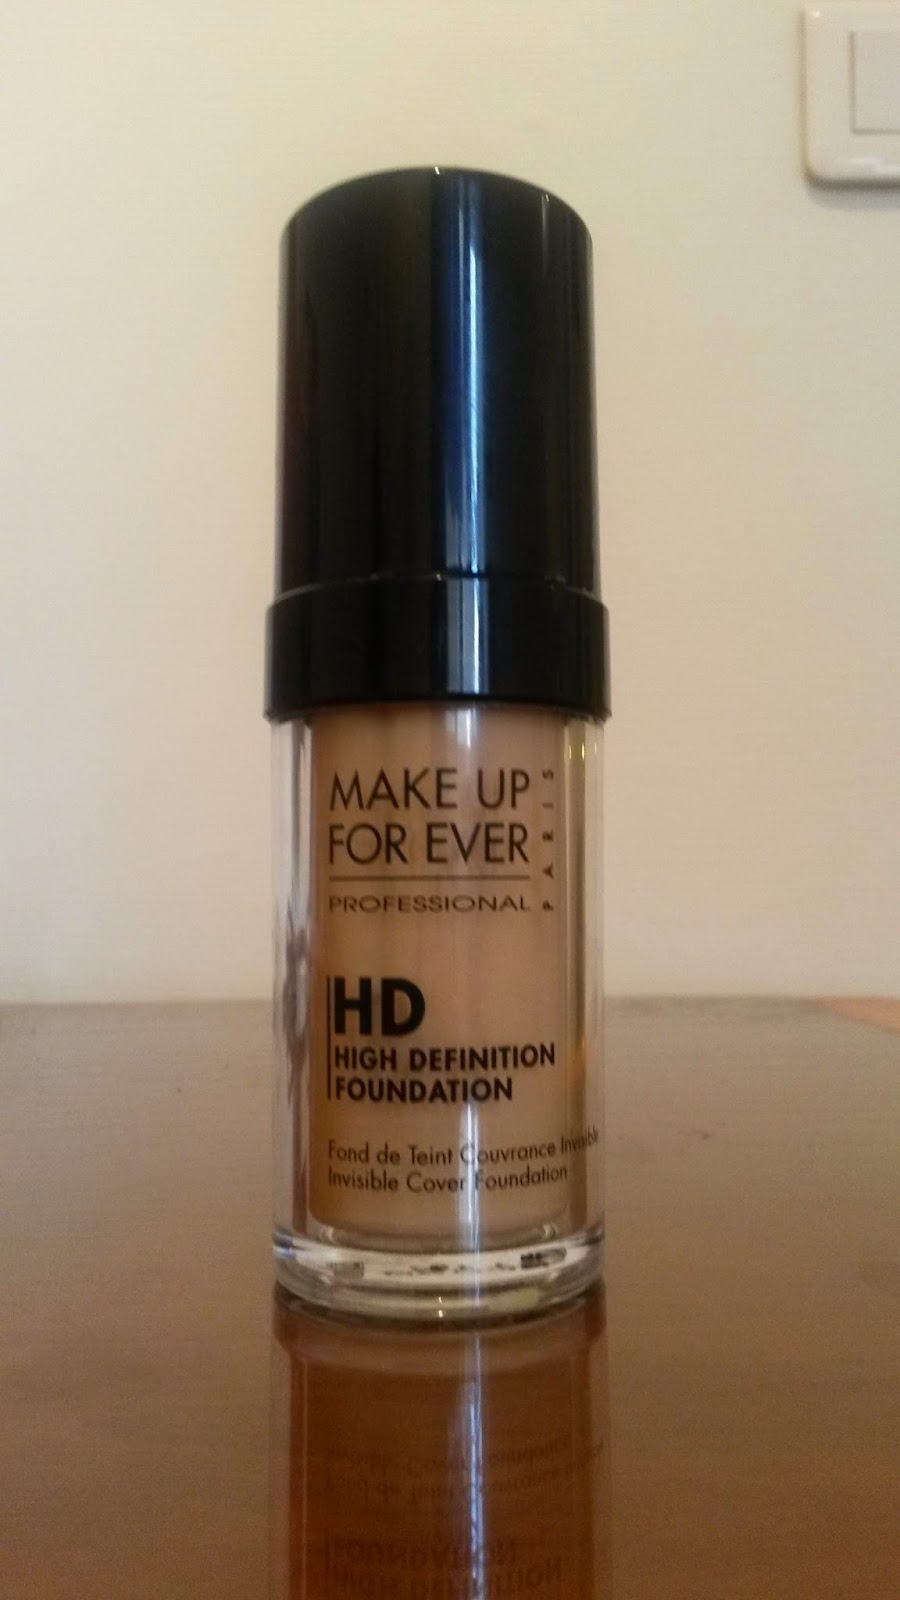 Fond de teint HD de Make up for Ever MUFE